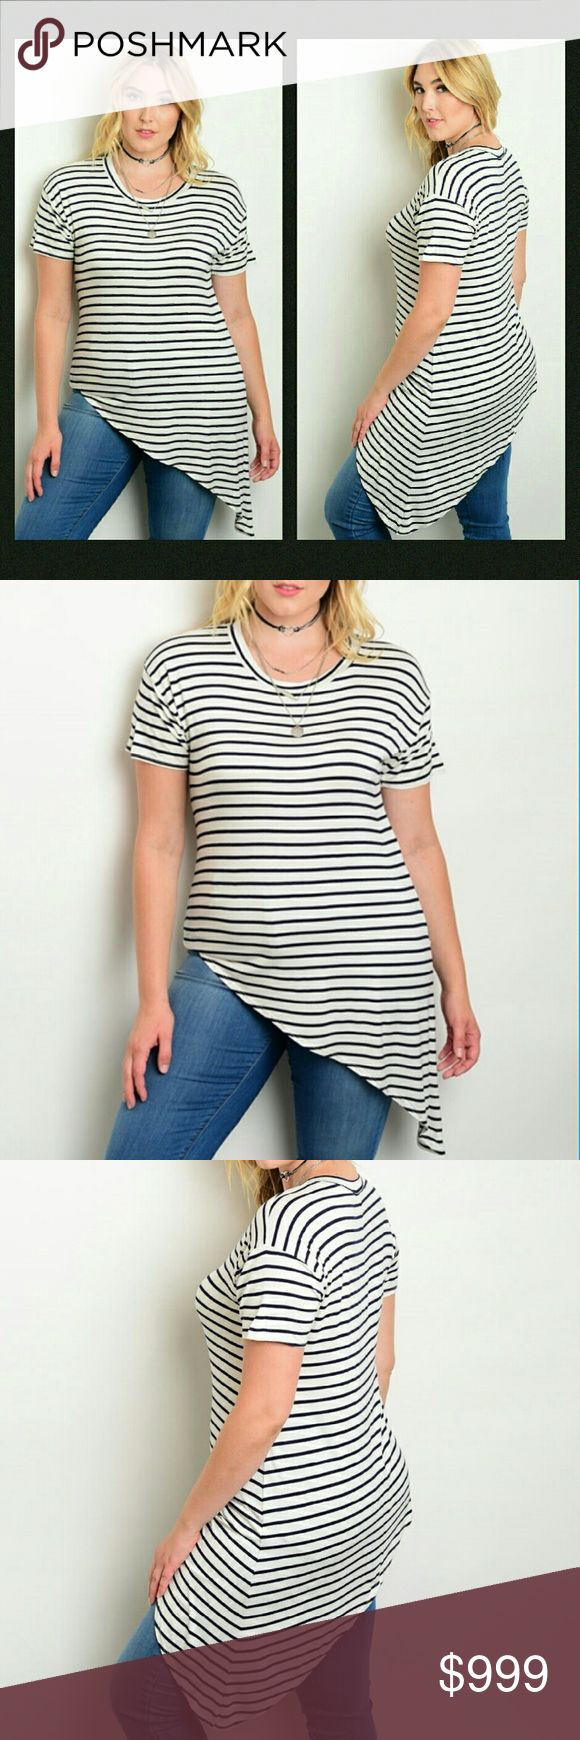 New Plus Size Tee This stripe print top features a diagonal hemline, short sleeves and a round neckline.   Plus sized  If unsure of what size to order, just ask and I can provide measurements!  Material: 95% polyester, 5% spandex    No trades  ✔Reasonable offers considered. (Item #41) Tops Tees - Short Sleeve